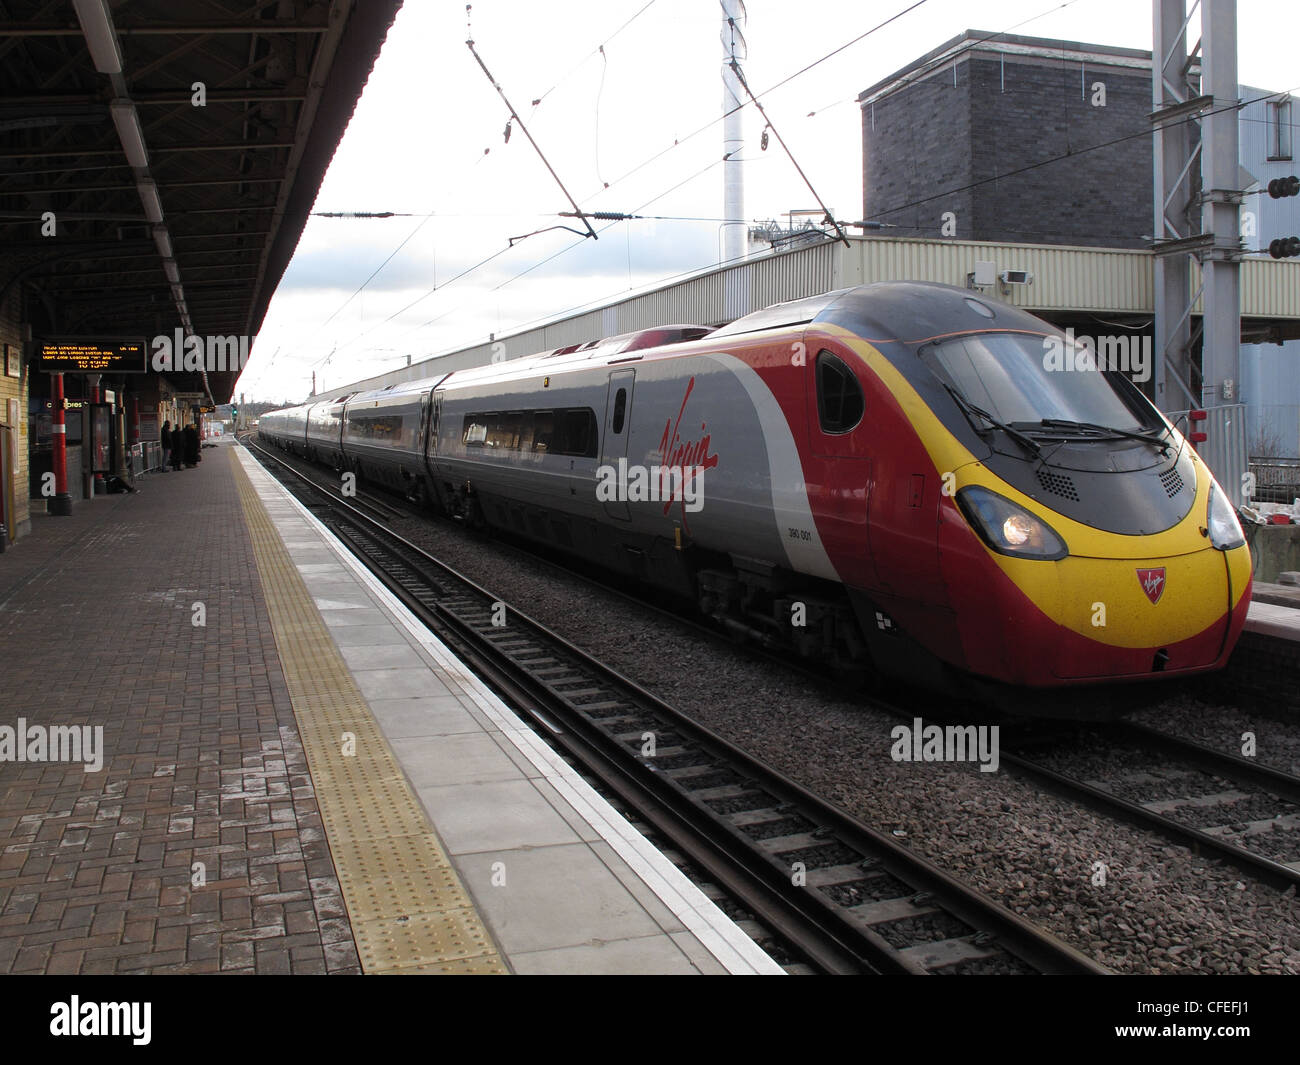 Virgin,Voyager,intercity,train,arrives,at,Warrington,Bank,Quay,Railway,Station,Looking,south,west,coast,westcoast,main,line,mainline,gotonysmith,electric,electrified,lights,on,light,headlight,head,Parker,Street,st,Branson,Branston,Richard,Pendo pendolino Glasgow Euston,gotonysmith,Warringtonians,Buy Pictures of,Buy Images Of